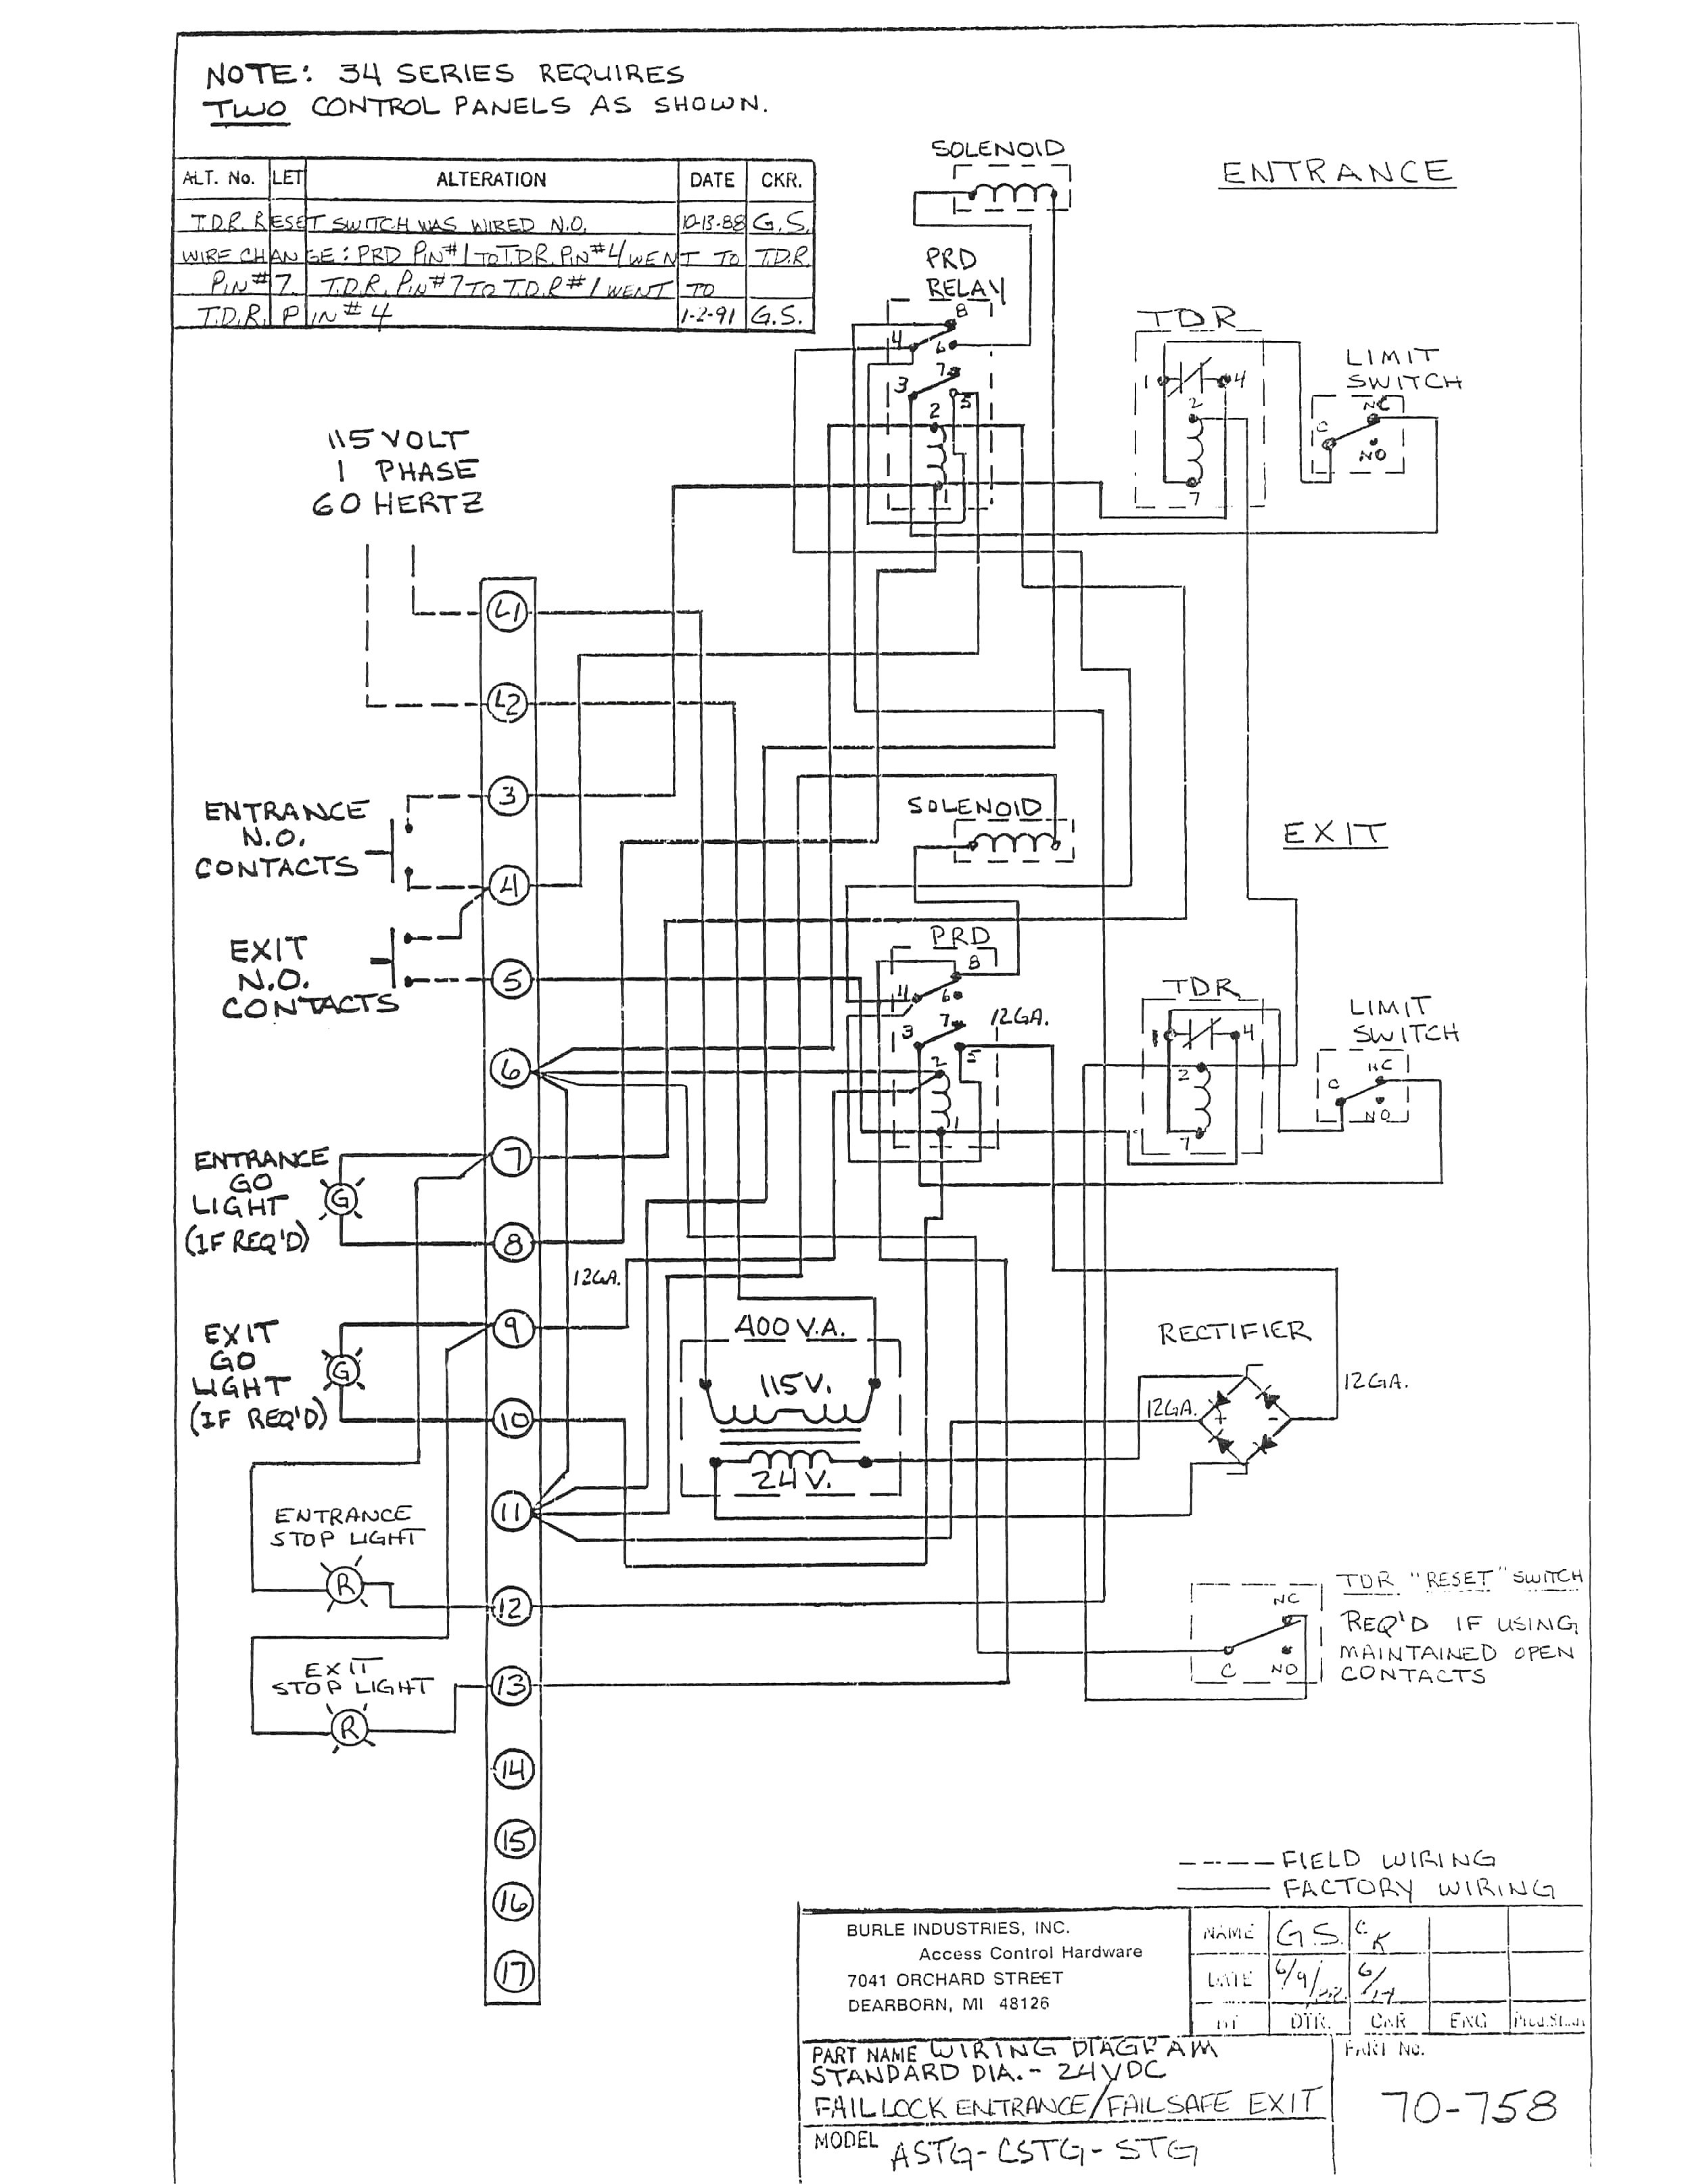 trane xl 1200 wiring diagram Collection-Trane Xl 1200 Wiring Diagram Luxury 8-q